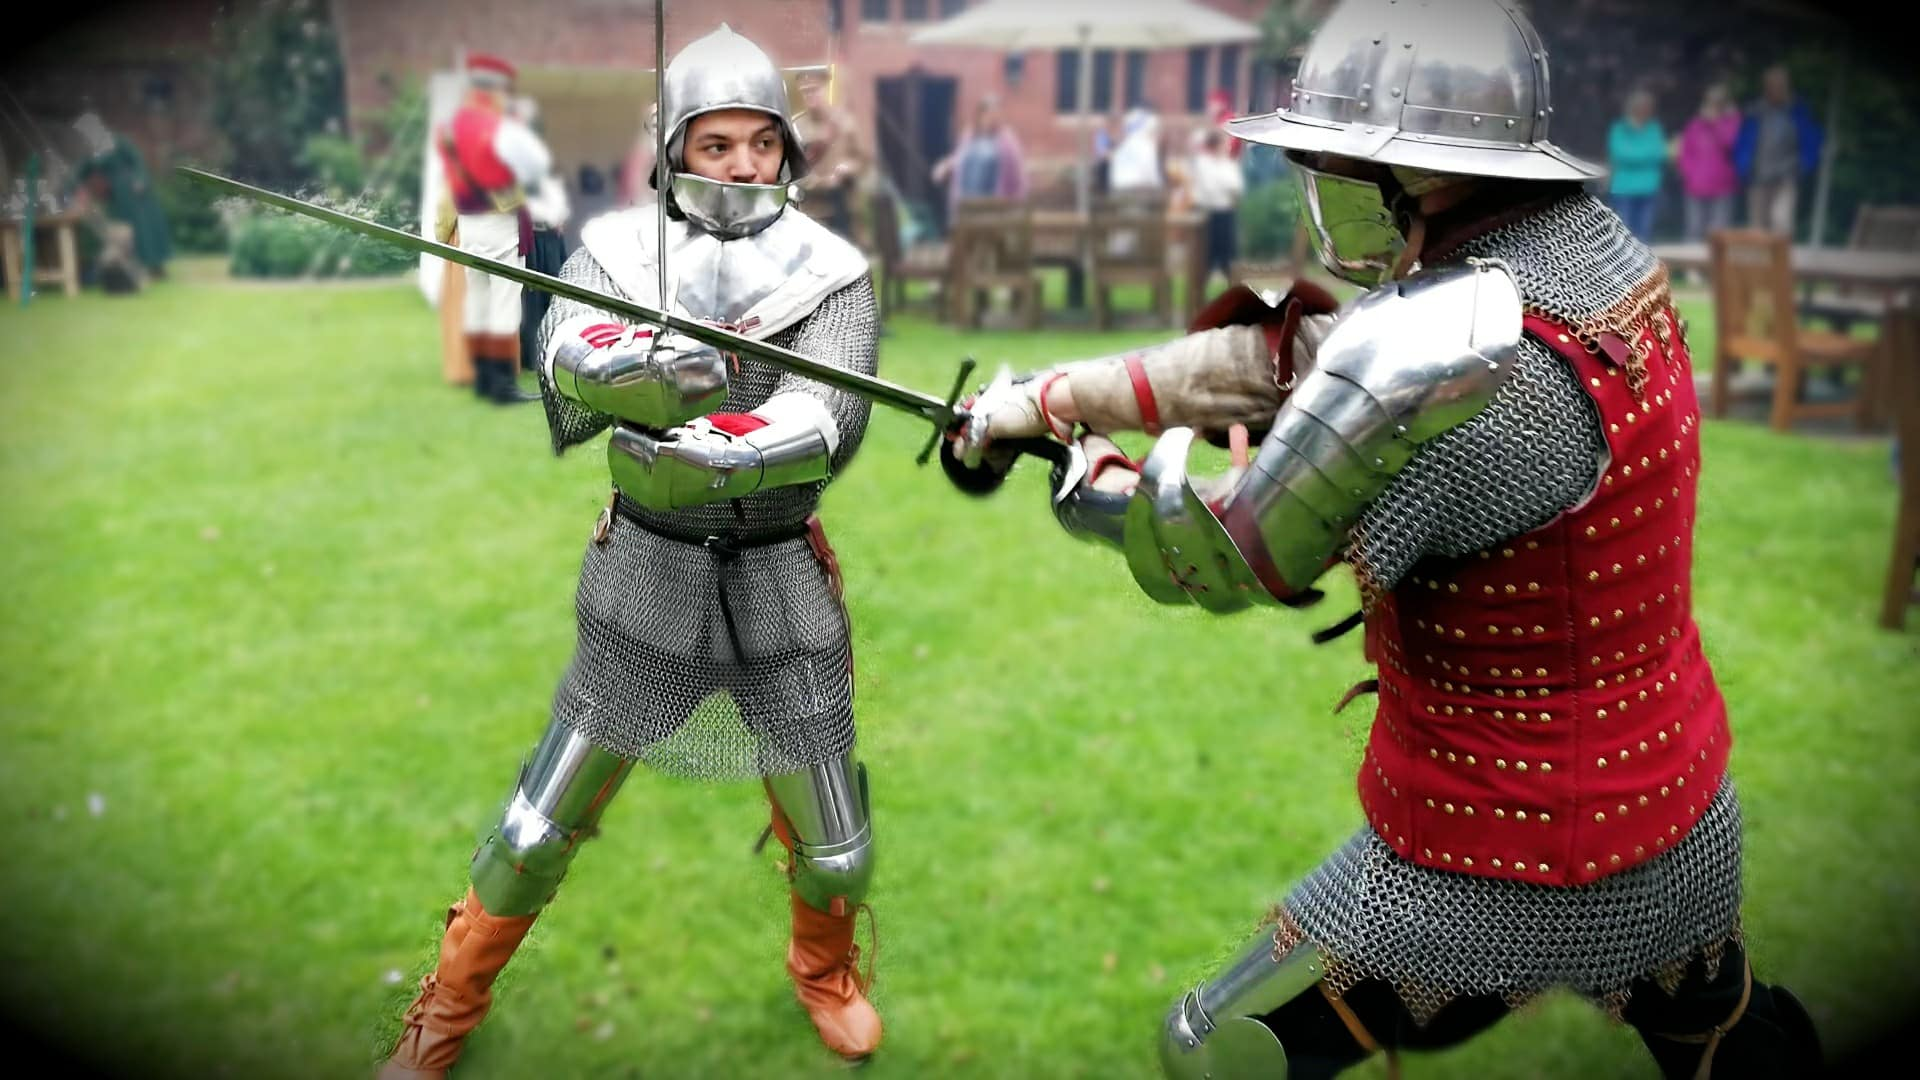 Medieval Swordfight